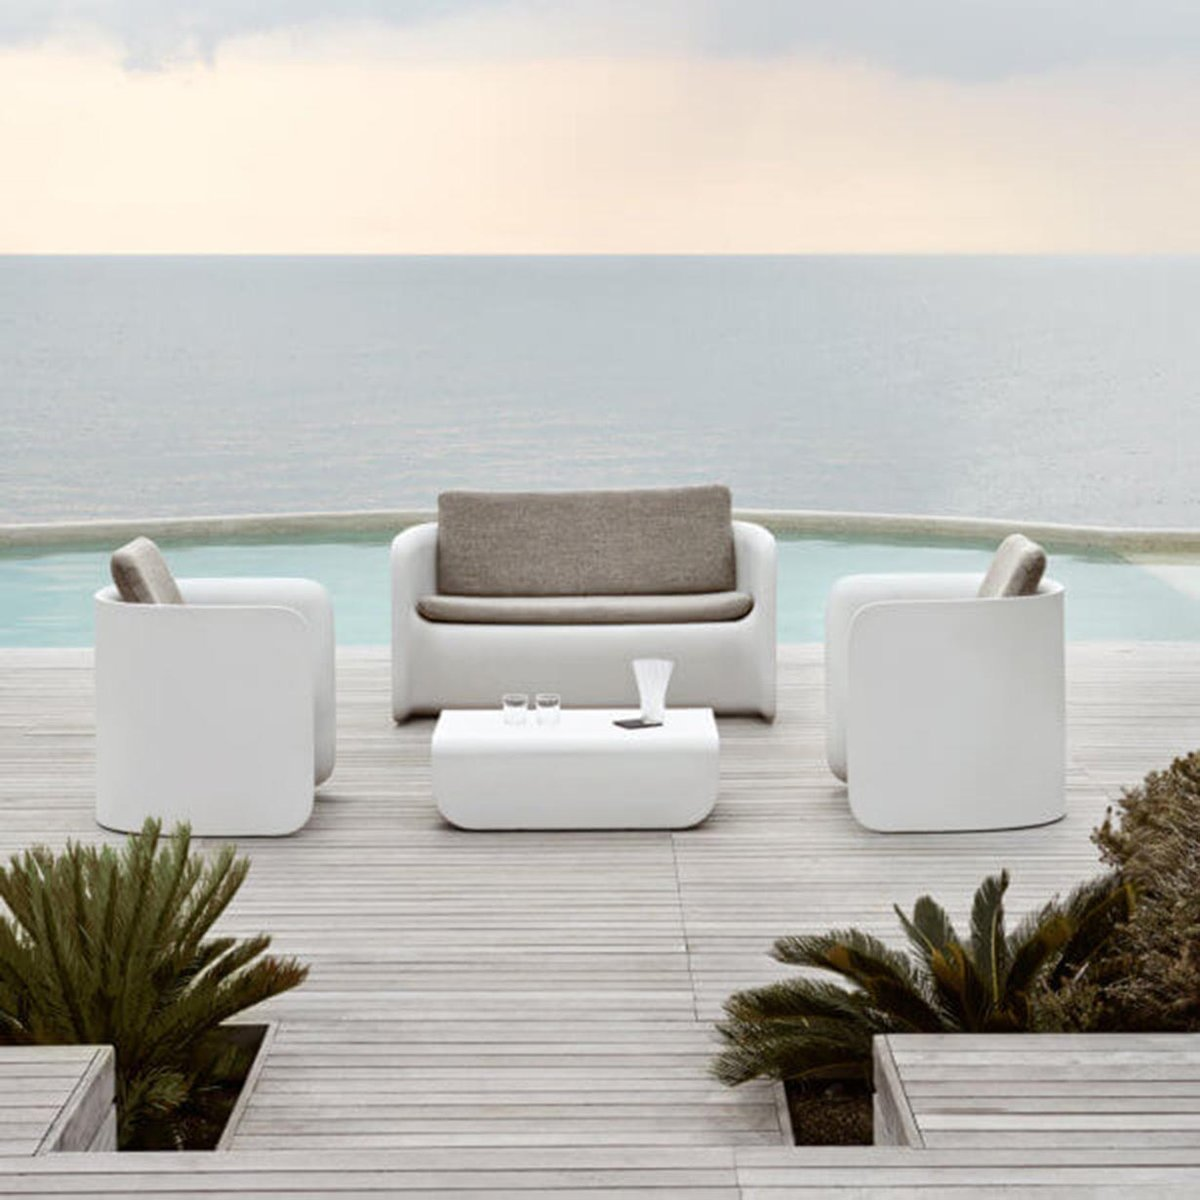 Nova outdoor living room furniture set by Myyour | LOVEThESIGN on Outdoor Living Room Set id=65140